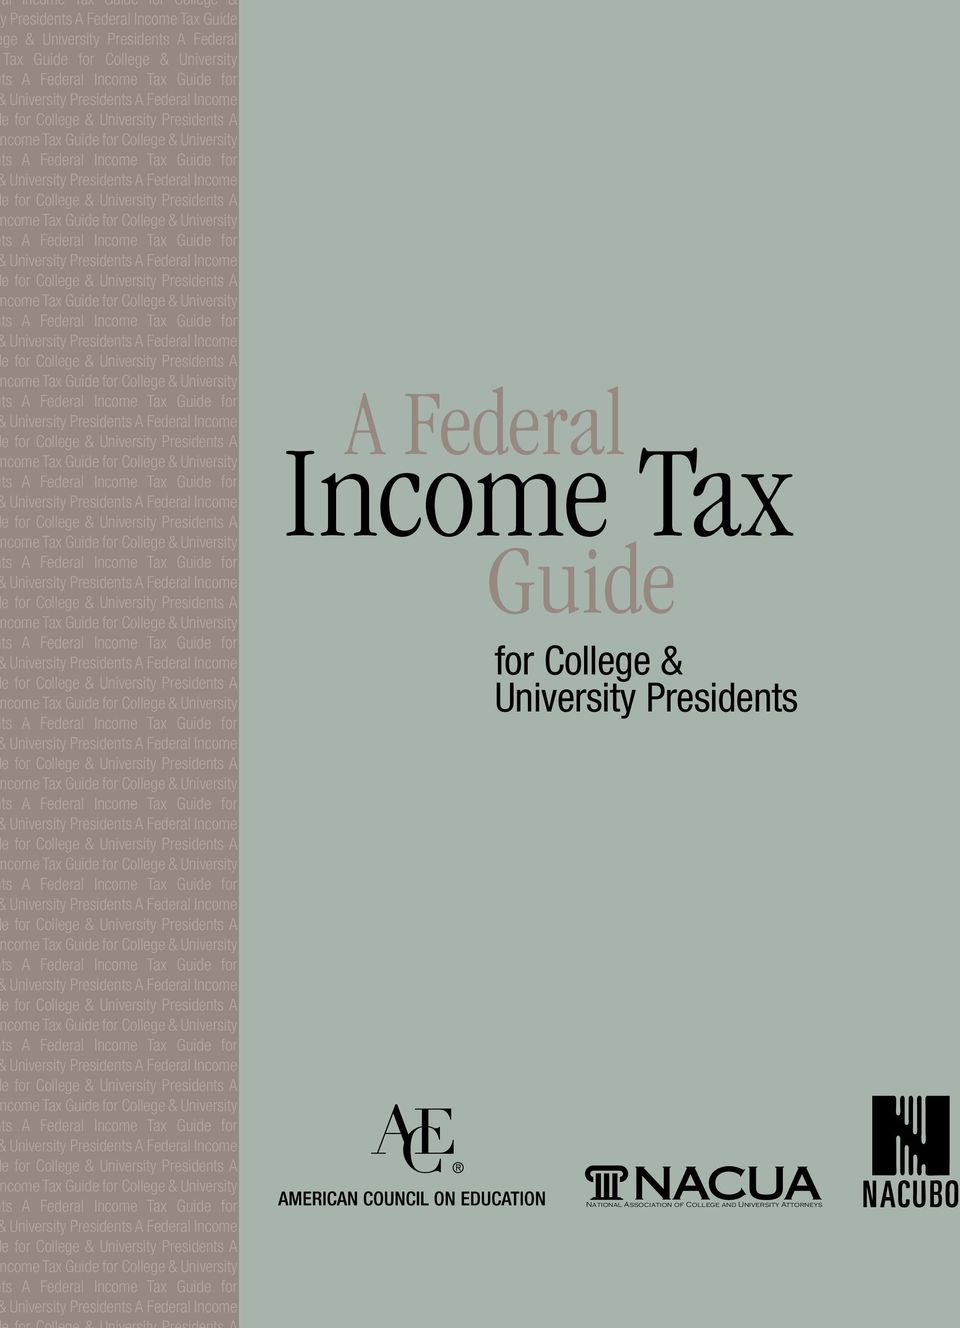 University Presidents A come Tax Guide for College & University ts A Federal Income Tax Guide for University  University Presidents A come Tax Guide for College & University ts A Federal Income Tax